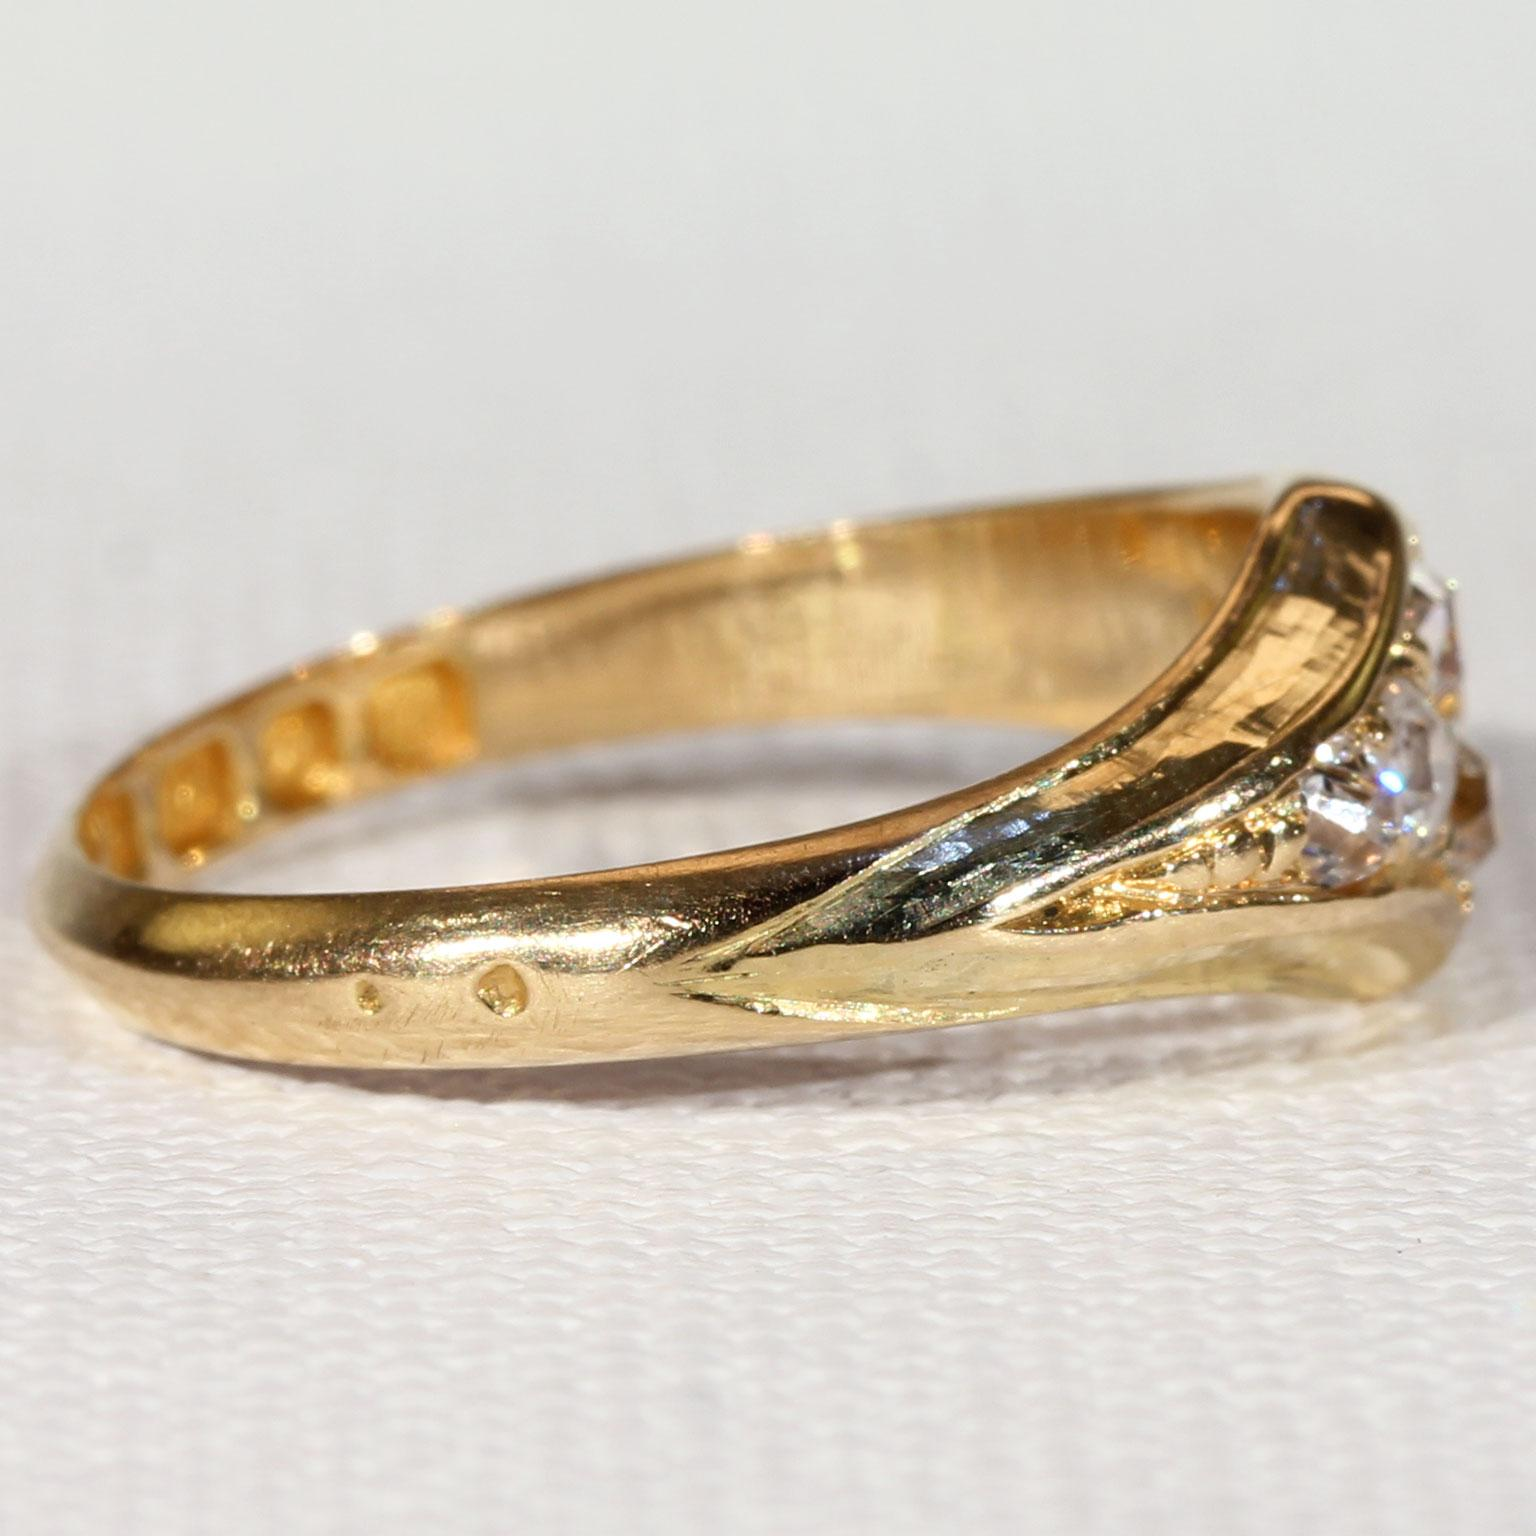 Vintage Art Deco Diamond Ring 18k Gold Hallmarked 1927